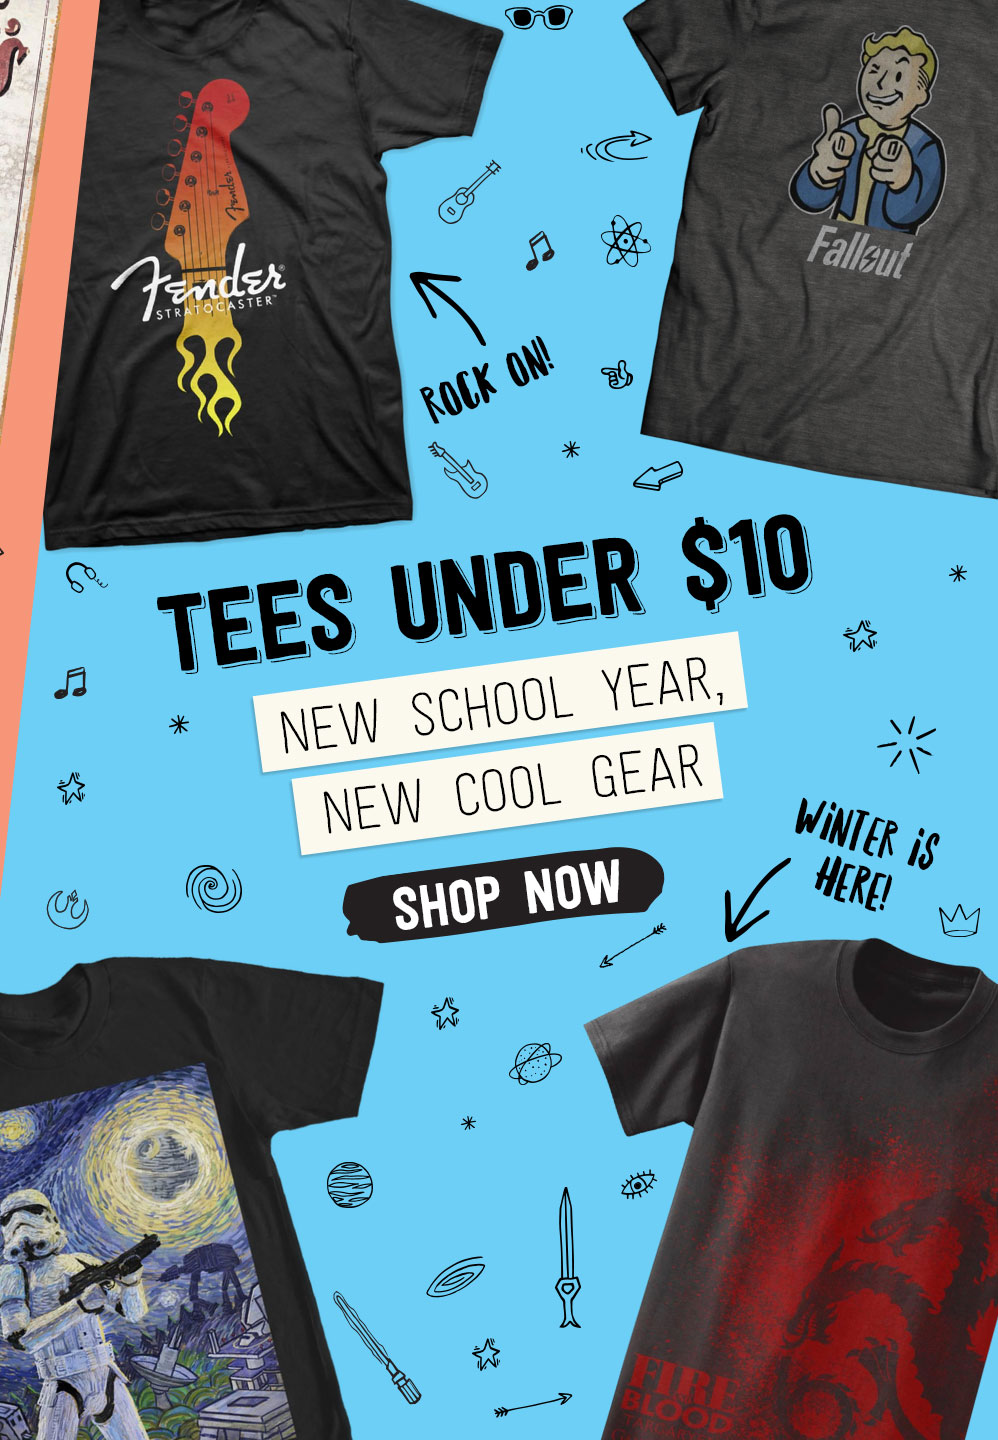 TEES UNDER $10. New School Year, New Cool Gear.